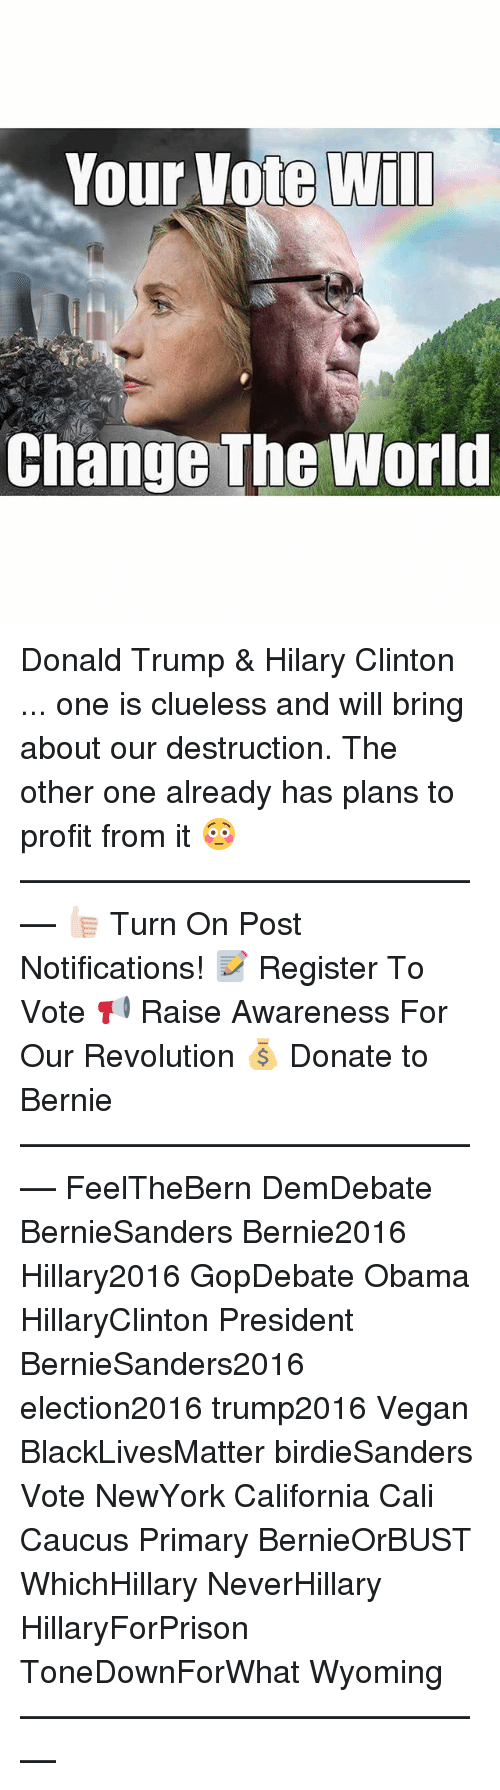 Black Lives Matter, Donald Trump, and Memes: Your Vote Will  Change The World Donald Trump & Hilary Clinton ... one is clueless and will bring about our destruction. The other one already has plans to profit from it 😳 ––––––––––––––––––––––––––– 👍🏻 Turn On Post Notifications! 📝 Register To Vote 📢 Raise Awareness For Our Revolution 💰 Donate to Bernie ––––––––––––––––––––––––––– FeelTheBern DemDebate BernieSanders Bernie2016 Hillary2016 GopDebate Obama HillaryClinton President BernieSanders2016 election2016 trump2016 Vegan BlackLivesMatter birdieSanders Vote NewYork California Cali Caucus Primary BernieOrBUST WhichHillary NeverHillary HillaryForPrison ToneDownForWhat Wyoming –––––––––––––––––––––––––––